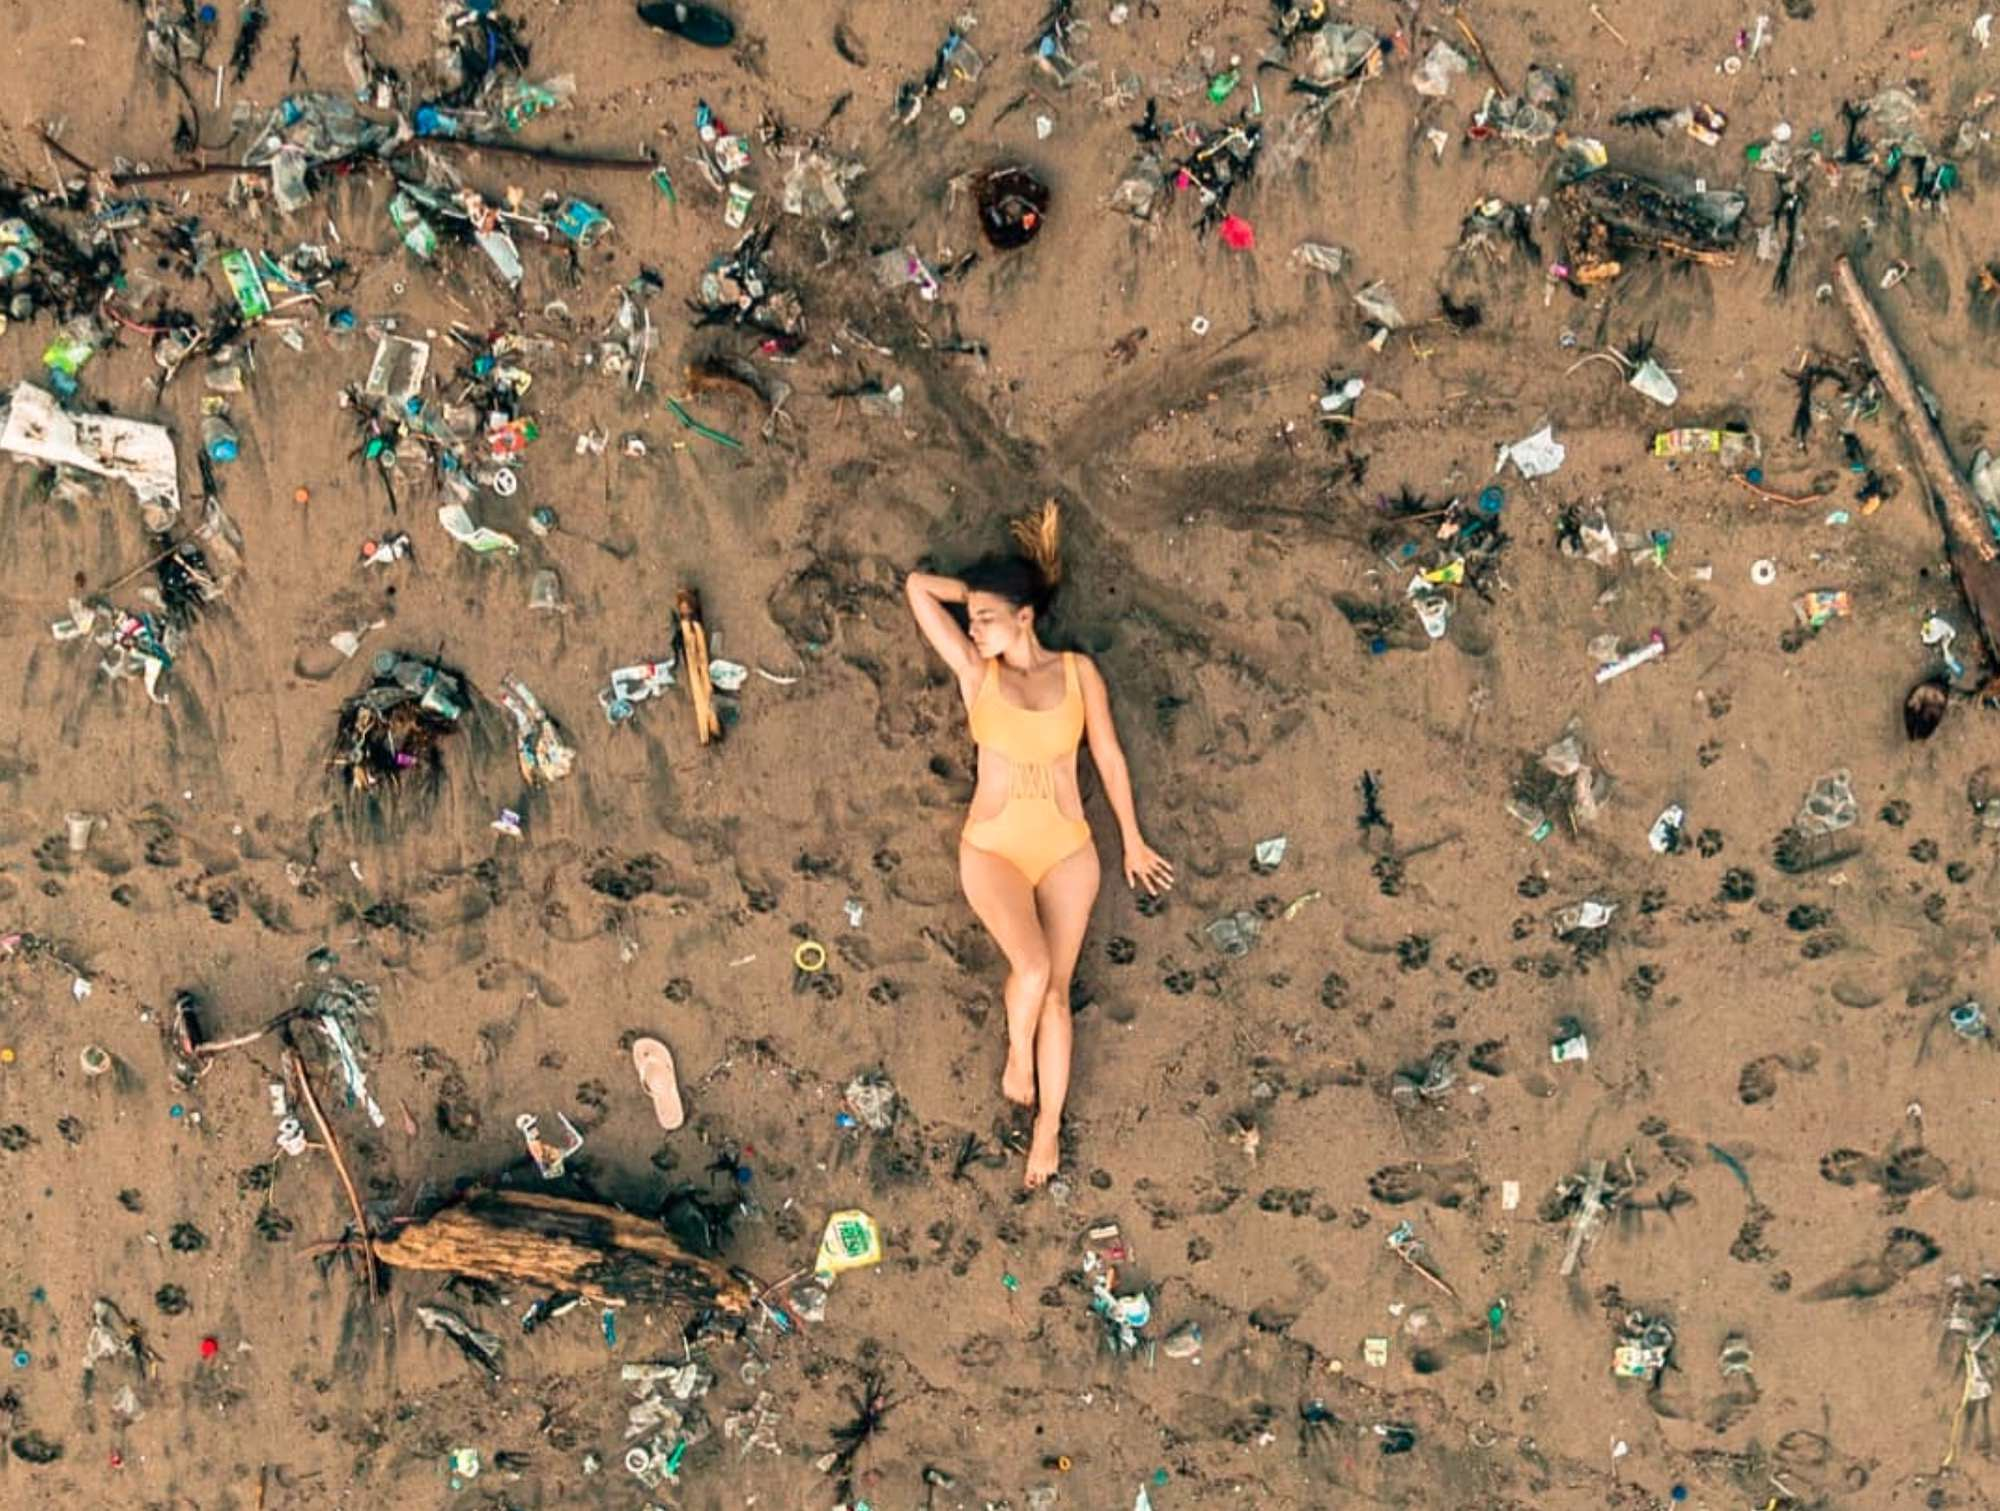 Artificial Intelligence (AI) recognizes plastic waste in drone photos